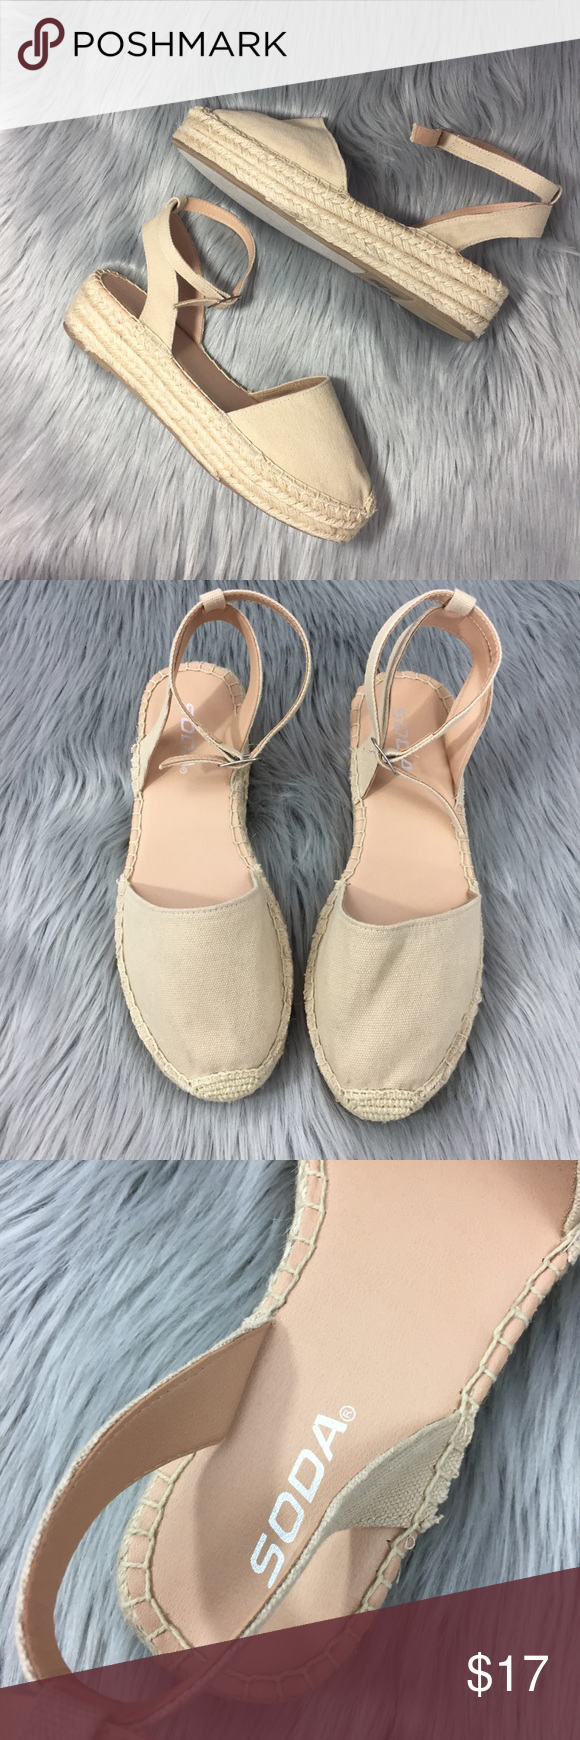 """ef609adcf4680 Soda Closed Toe Low Wedge Espadrille Sandals Excellent condition low wedge  espadrilles from Soda, """"fiesta"""" style with ankle strap and toe enclosure  -nude ..."""